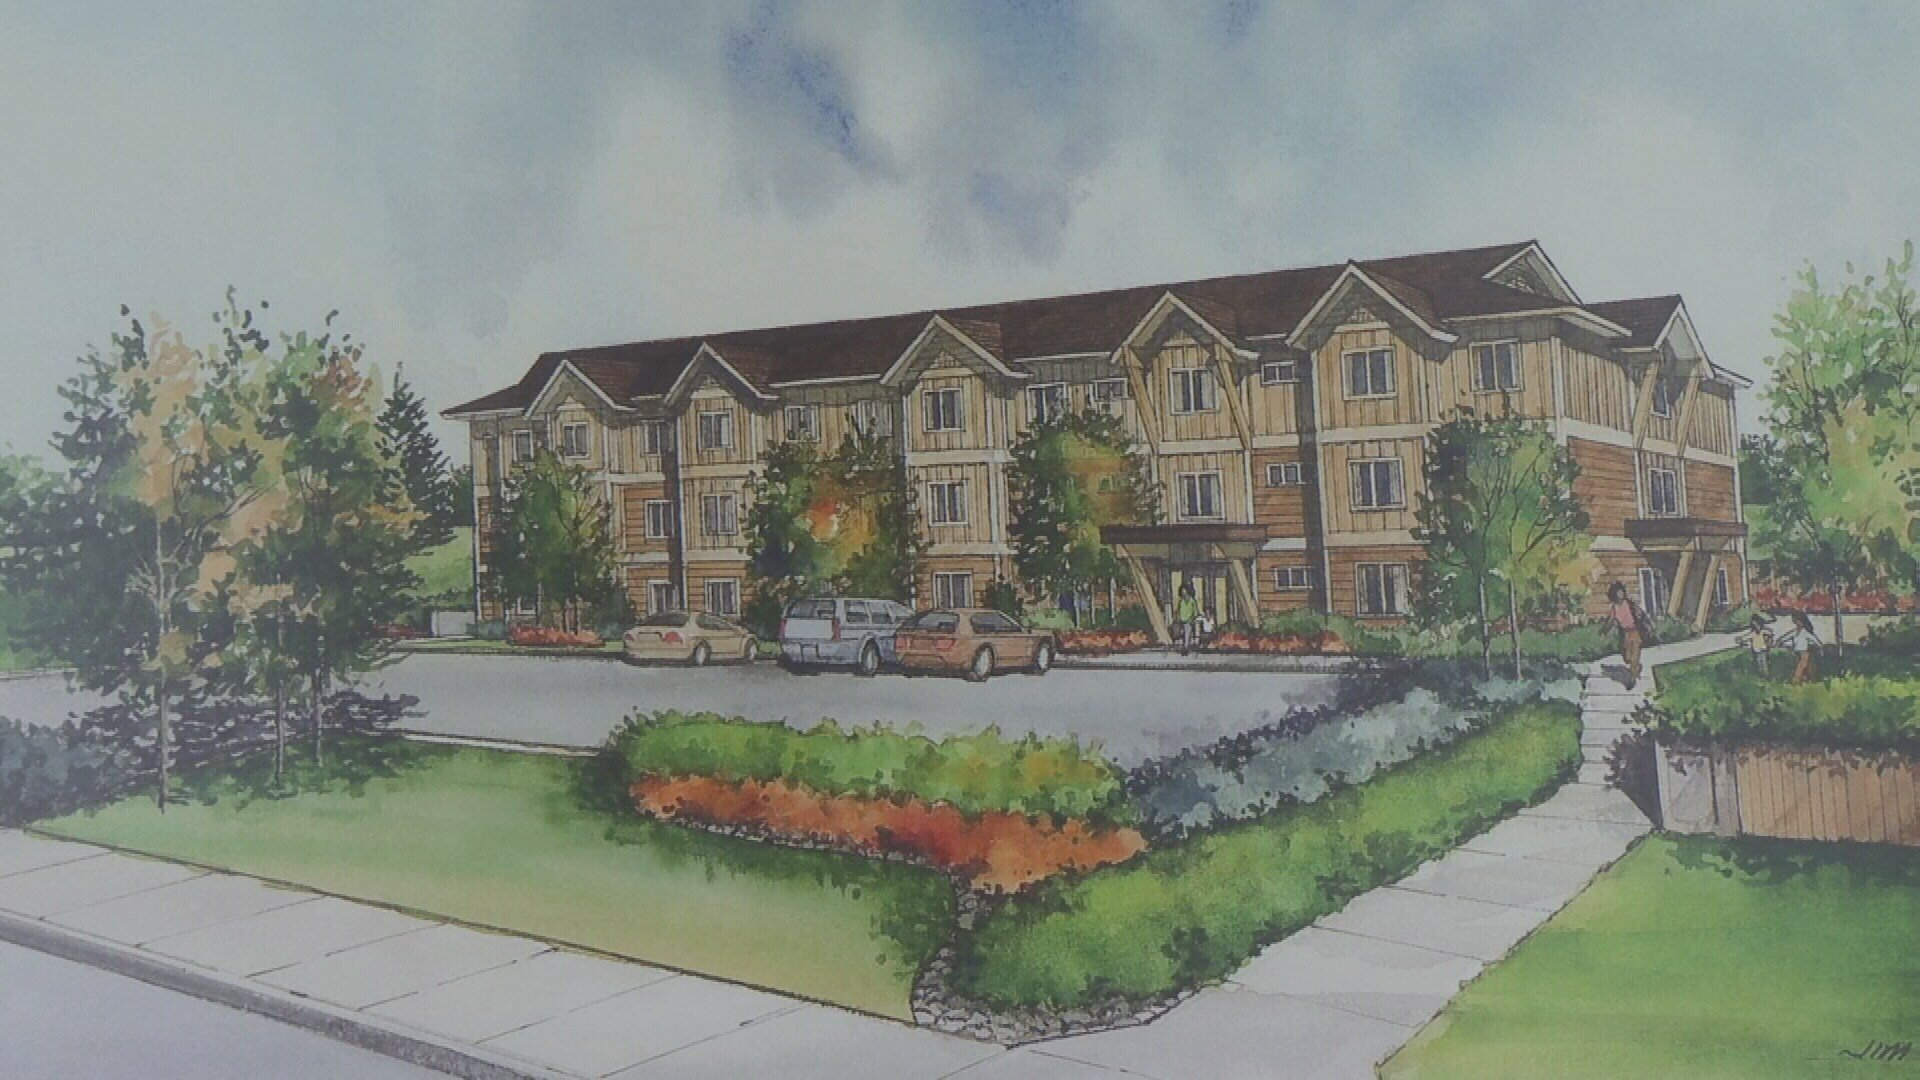 Groundbreaking on billings transitional living facility for vict krtv news in great falls montana - The living room great falls mt ...